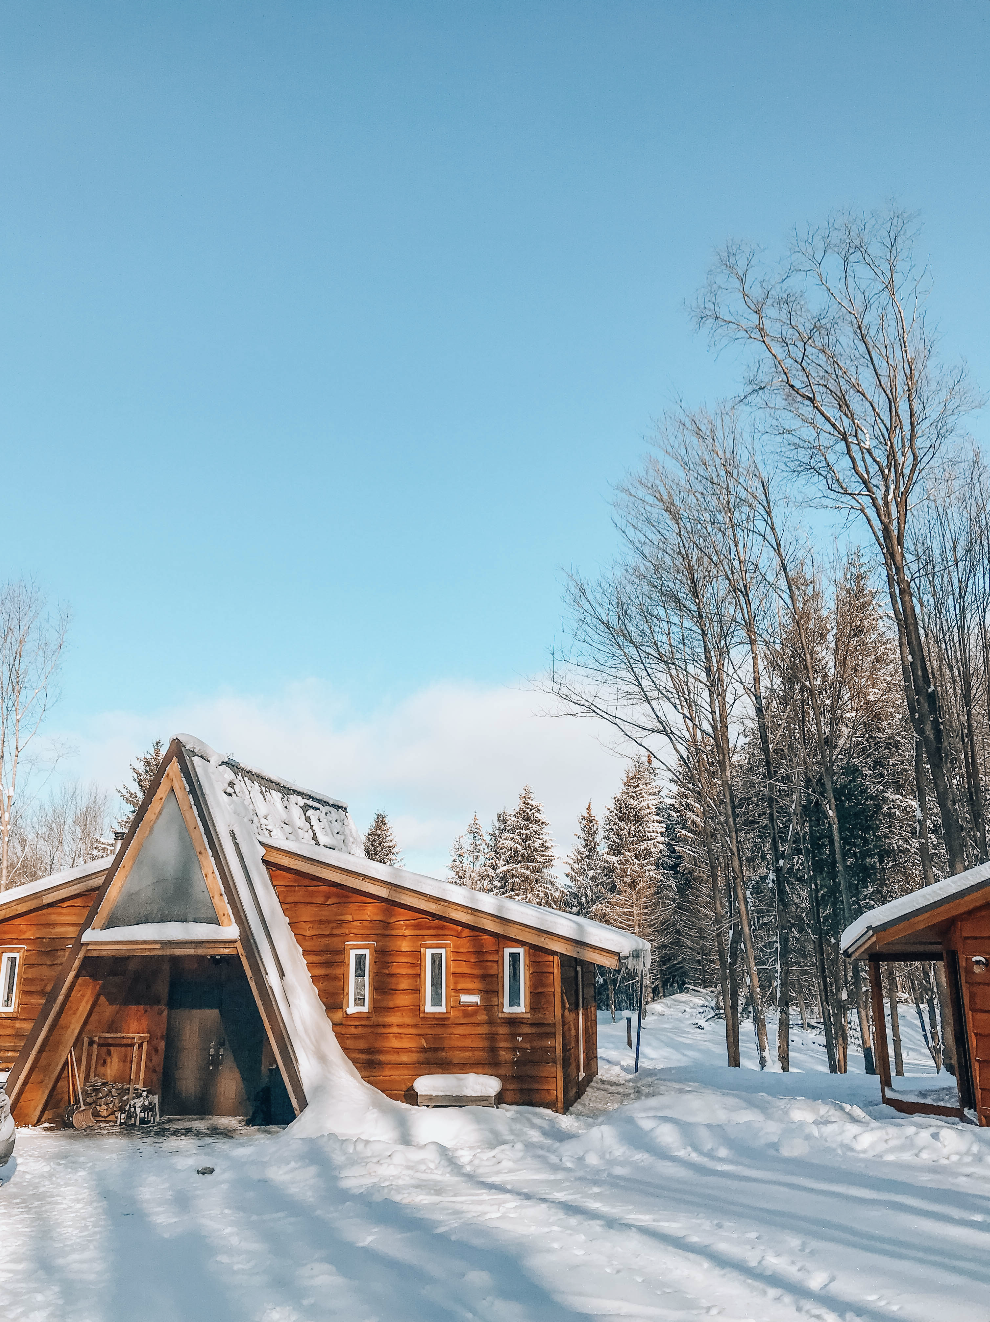 Getaway Cabins – Adventures in Ellicottville, NY